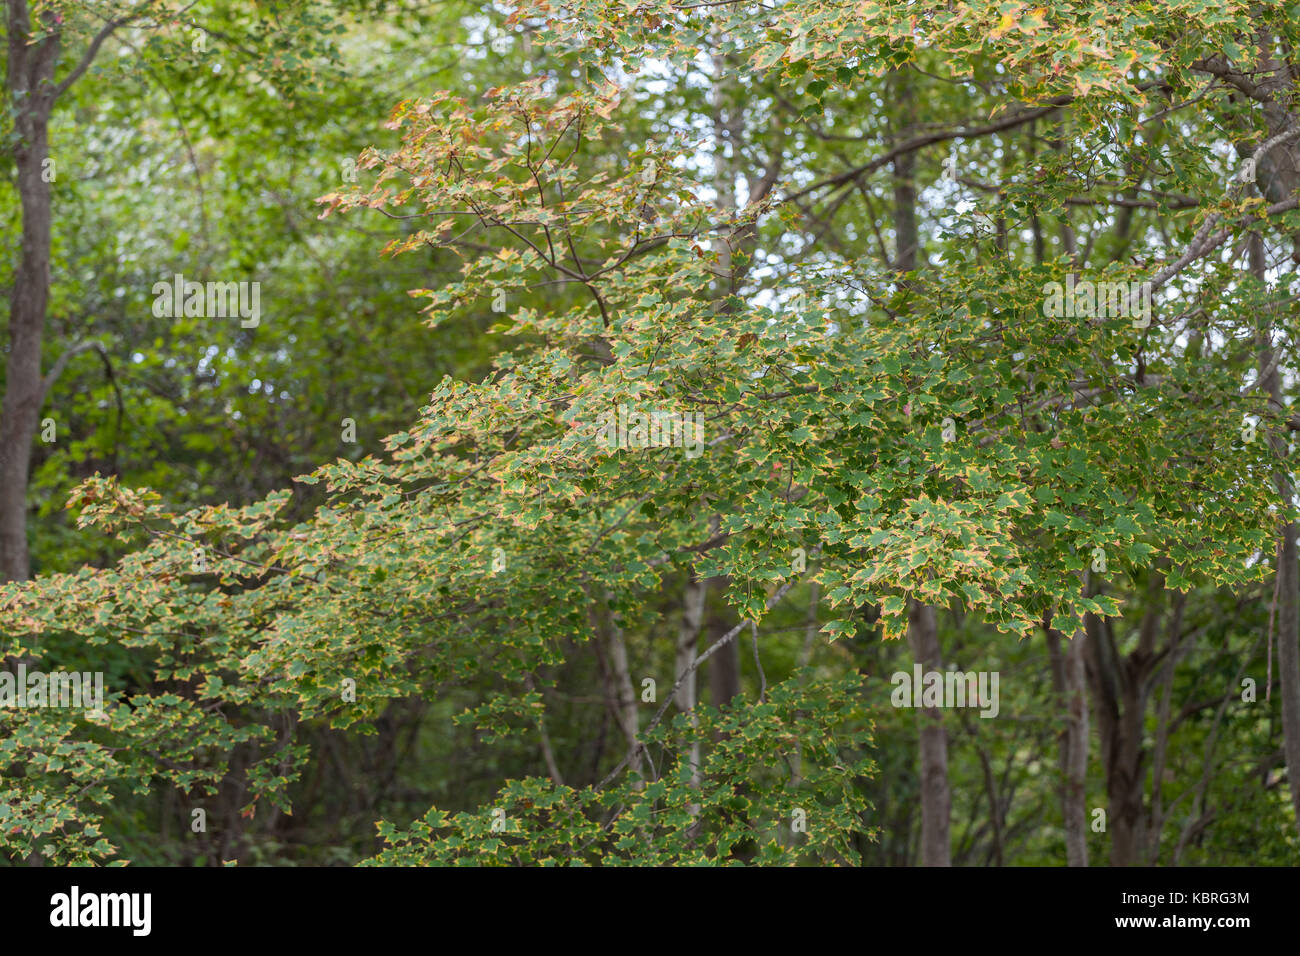 Trees Turning Color Stock Photos & Trees Turning Color Stock Images ...